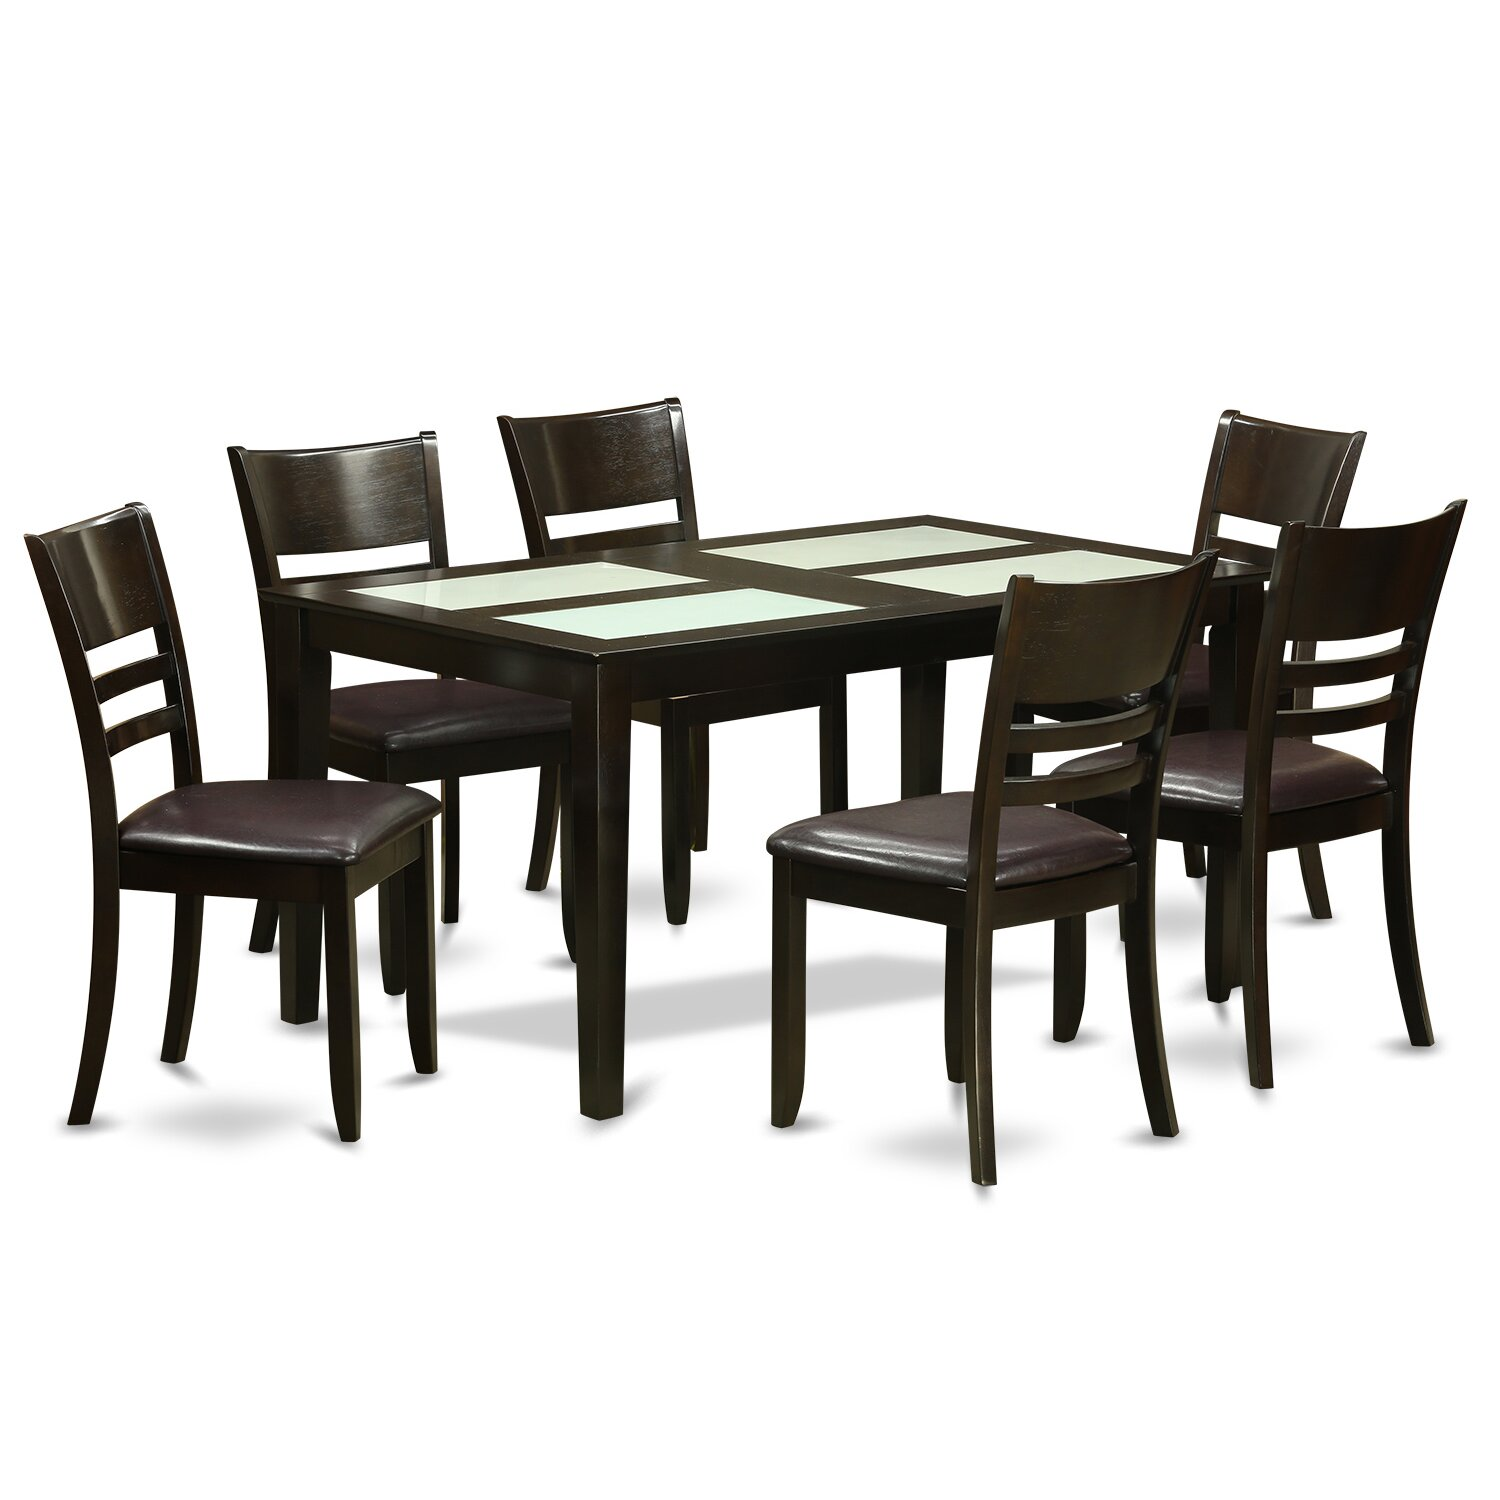 Wooden importers capri 7 piece dining set wayfair for 7 piece dining set